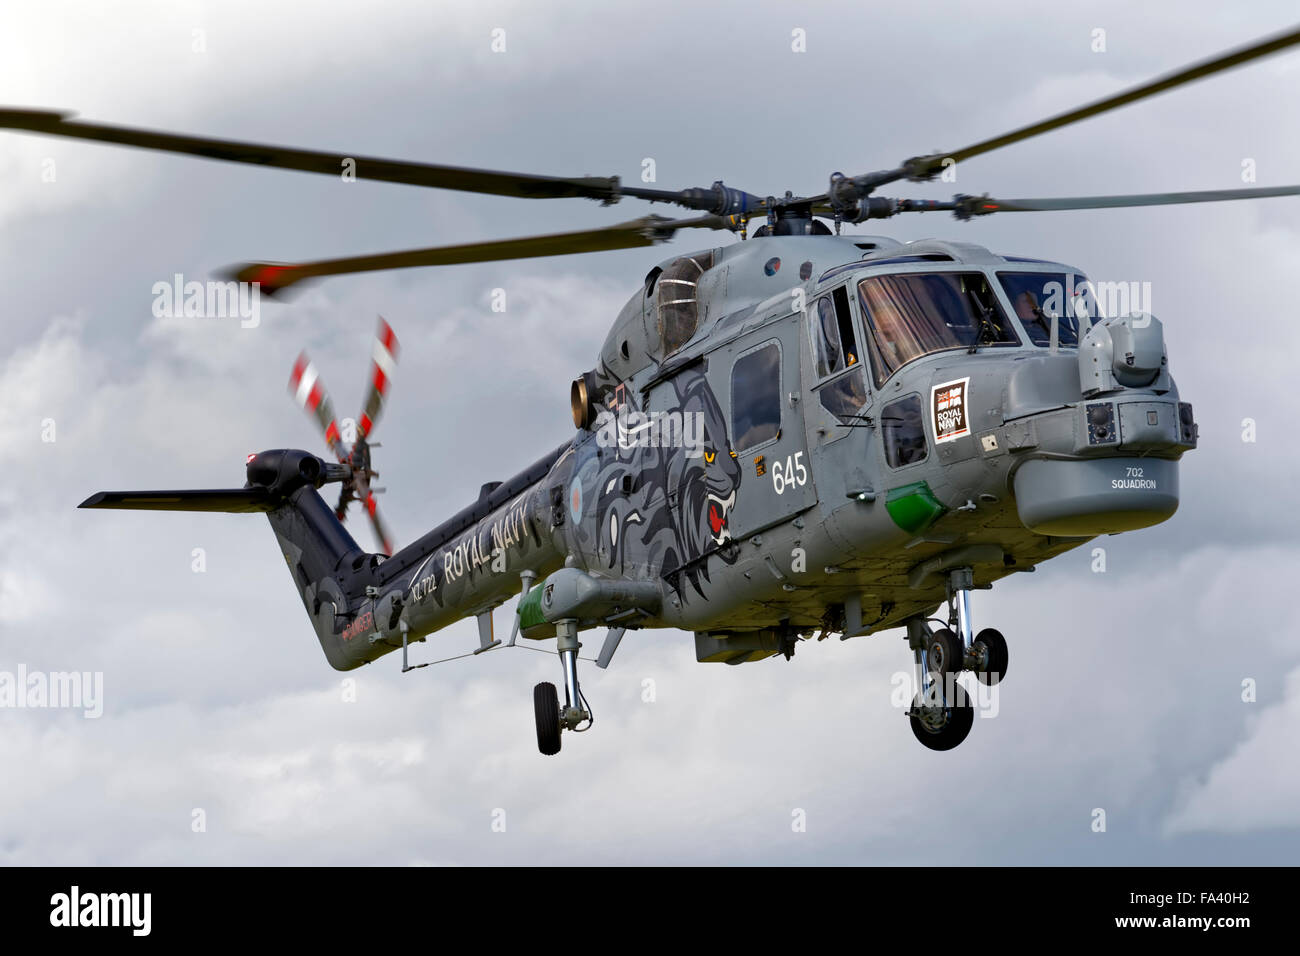 Westland Lynx HMA.8SRU XZ722/645 of the Royal Navy Black Cats helicopter display team at the Cotswold Airshow,Gloucestershire,UK - Stock Image